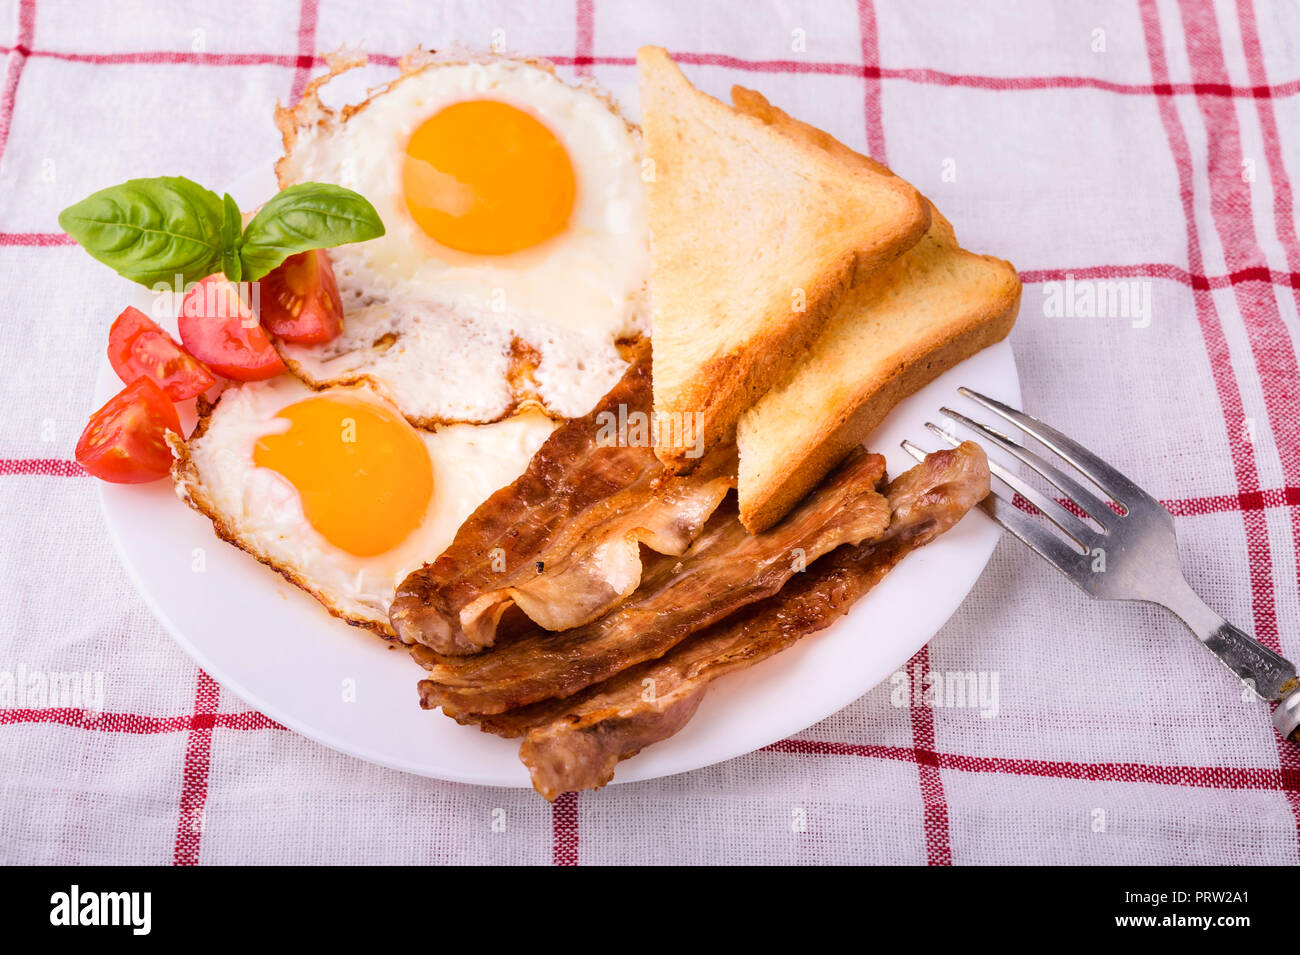 Breakfast with bacon and fried eggs. Served on white plate with sliced cherry tomato, basil leaves and crispy toast slice. Stock Photo